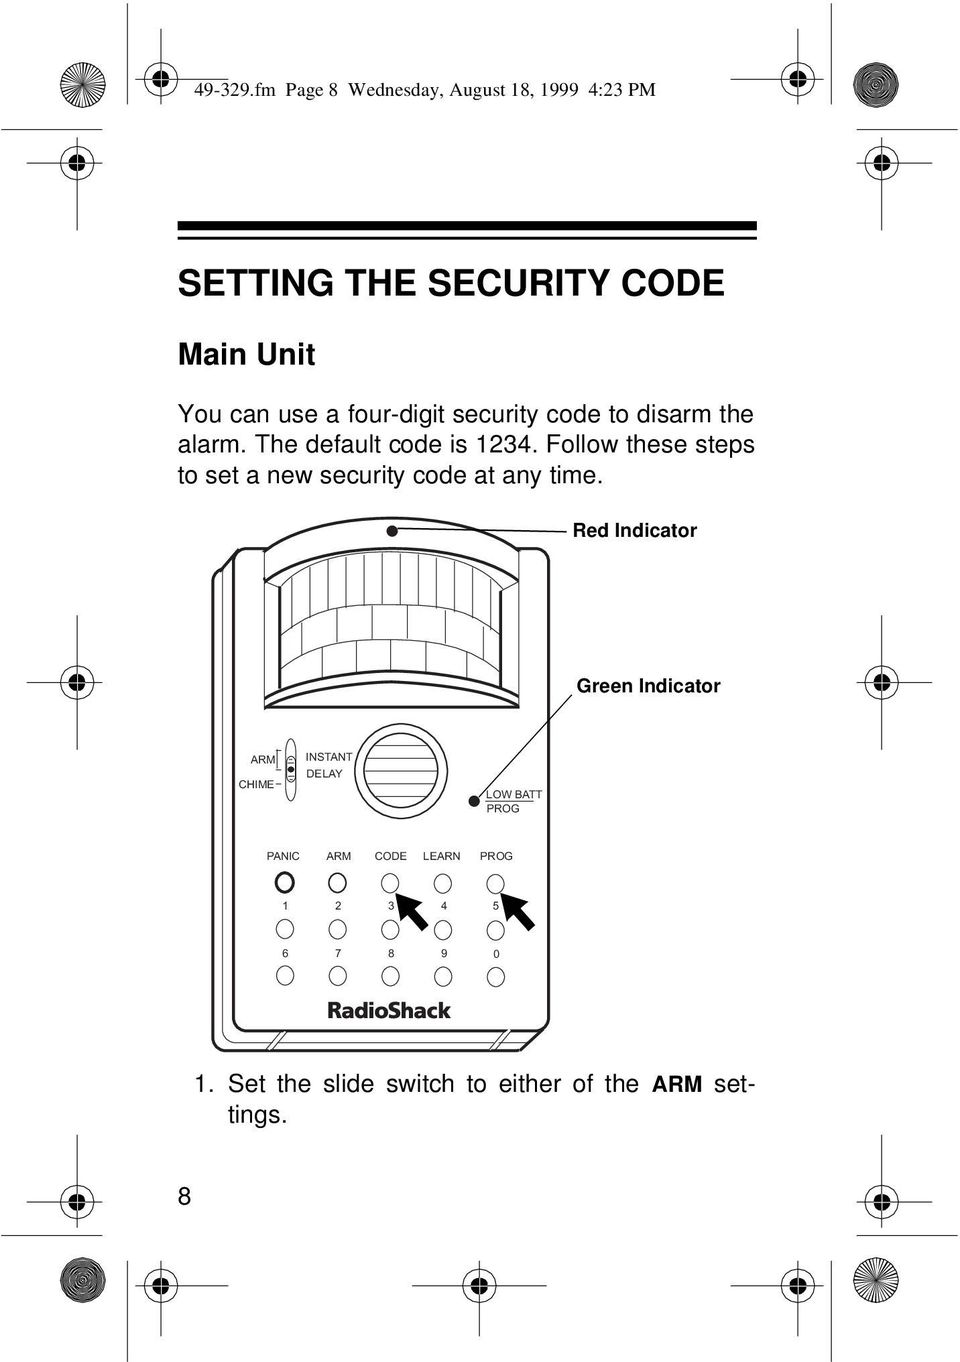 four-digit security code to disarm the alarm. The default code is 1234.